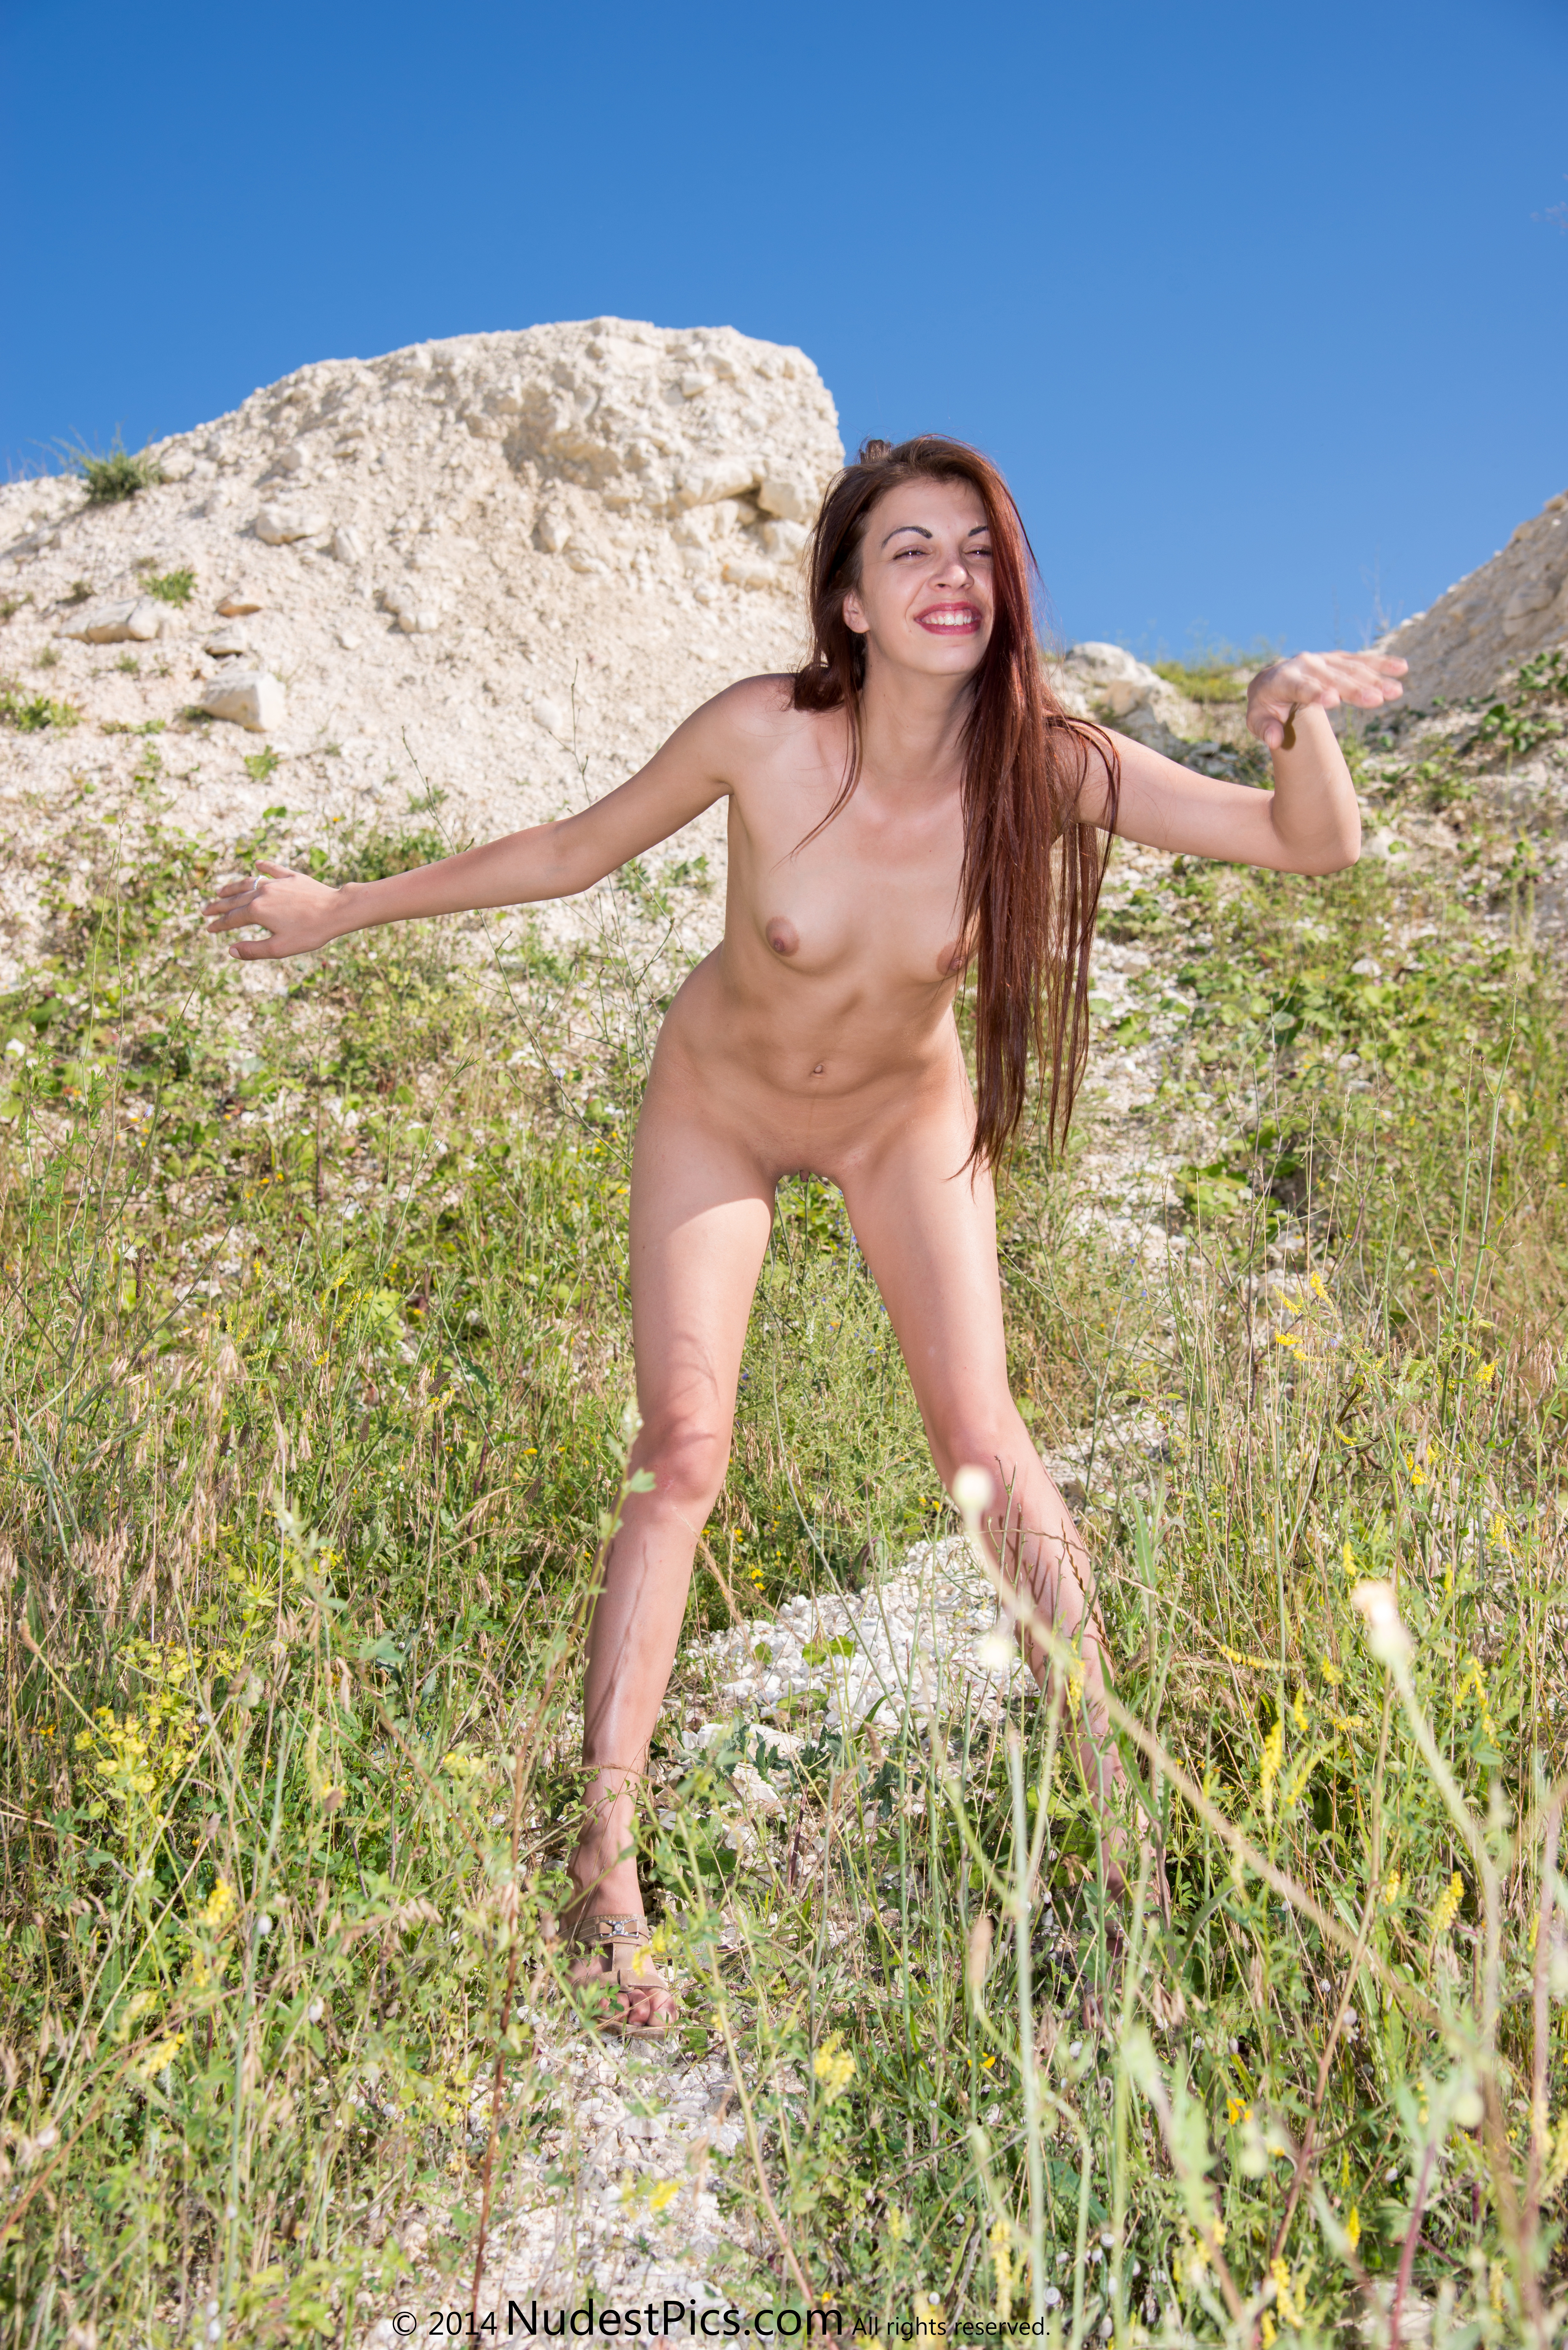 Cute Happy Gal Posing Nude in the Nature